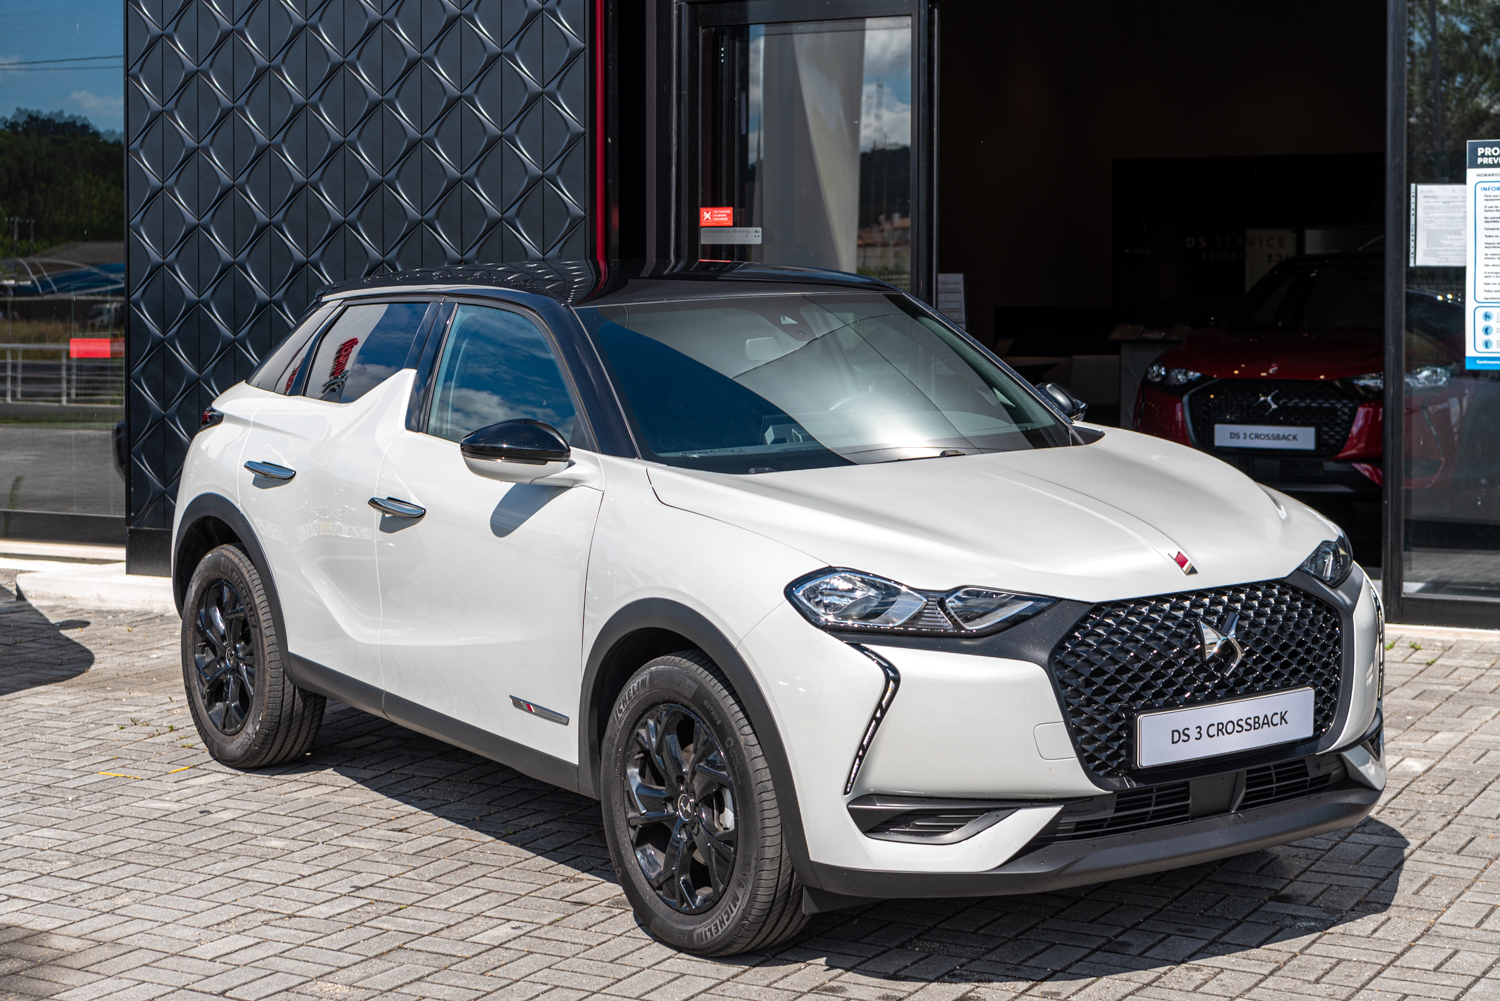 DS 3 CROSSBACK 1.5 BlueHDi 100 Manual PERFORMANCE Line AM10